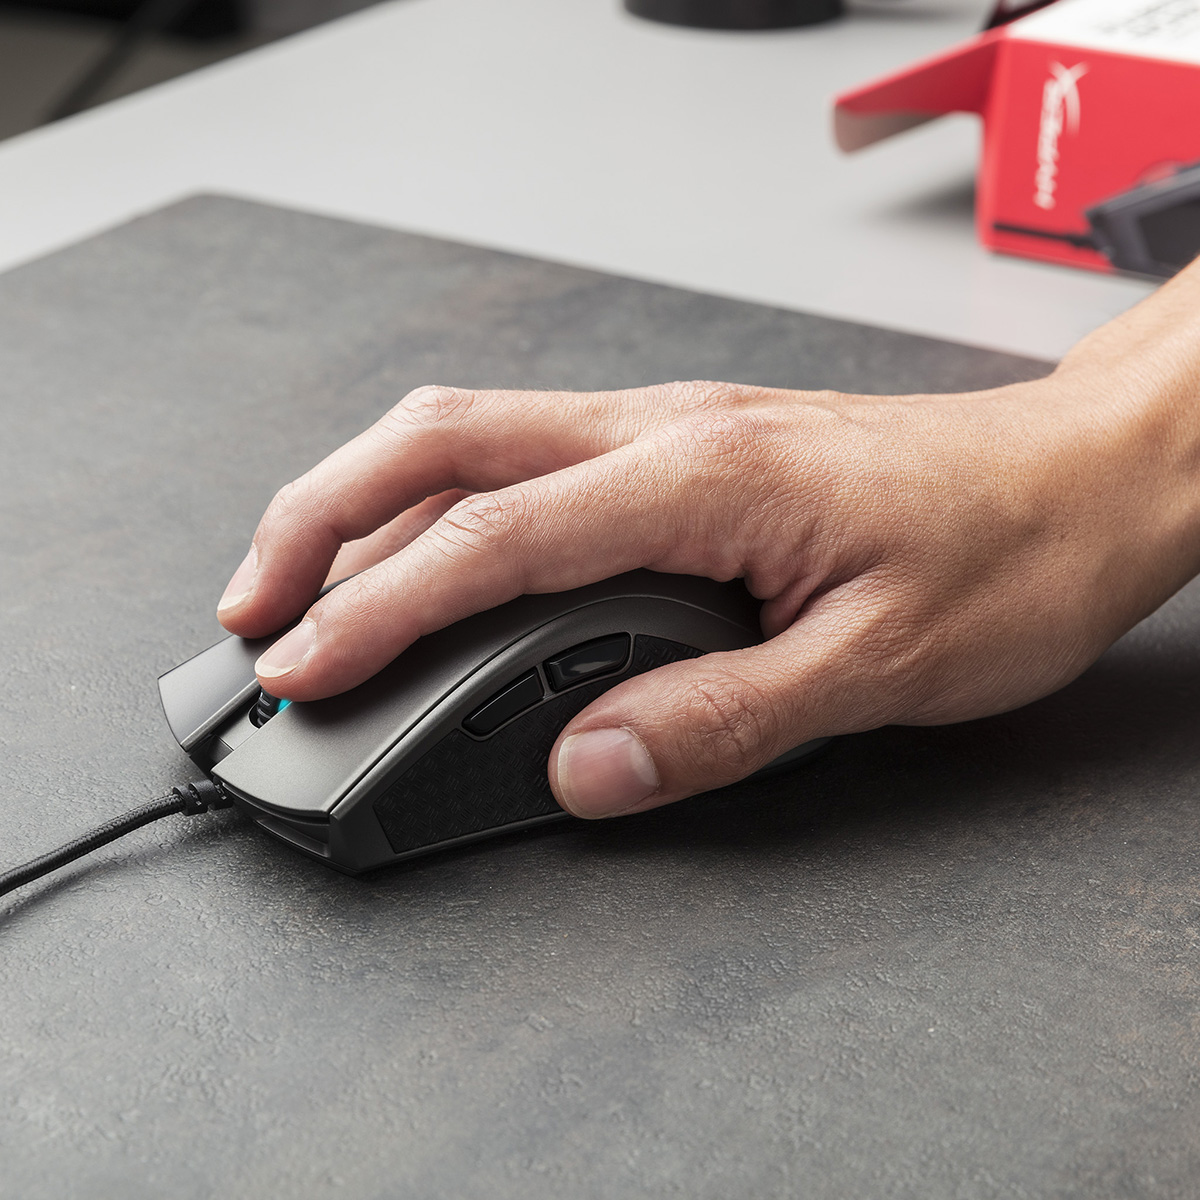 hyperx pulsfire fps pro gaming mouse